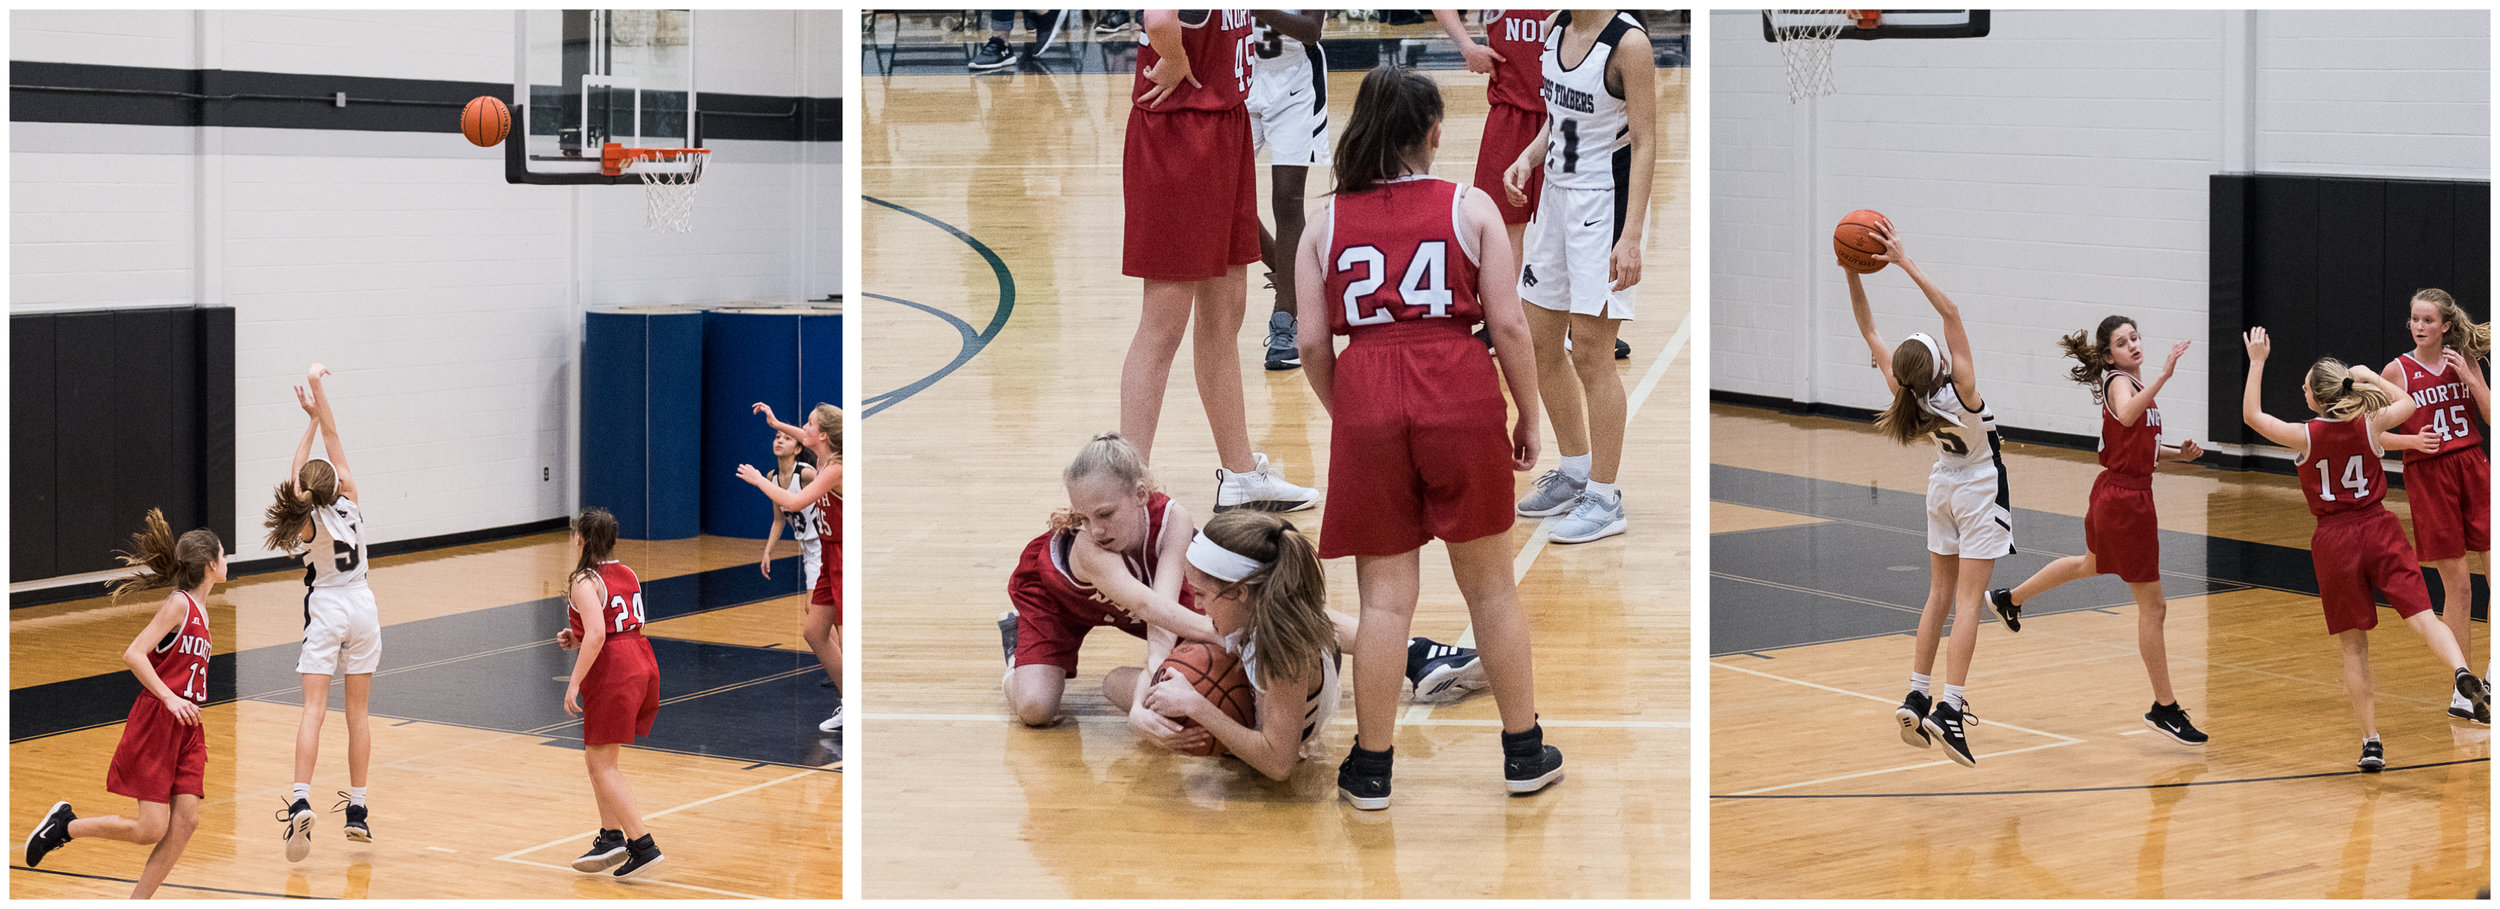 So far, Ella finished up basketball season.